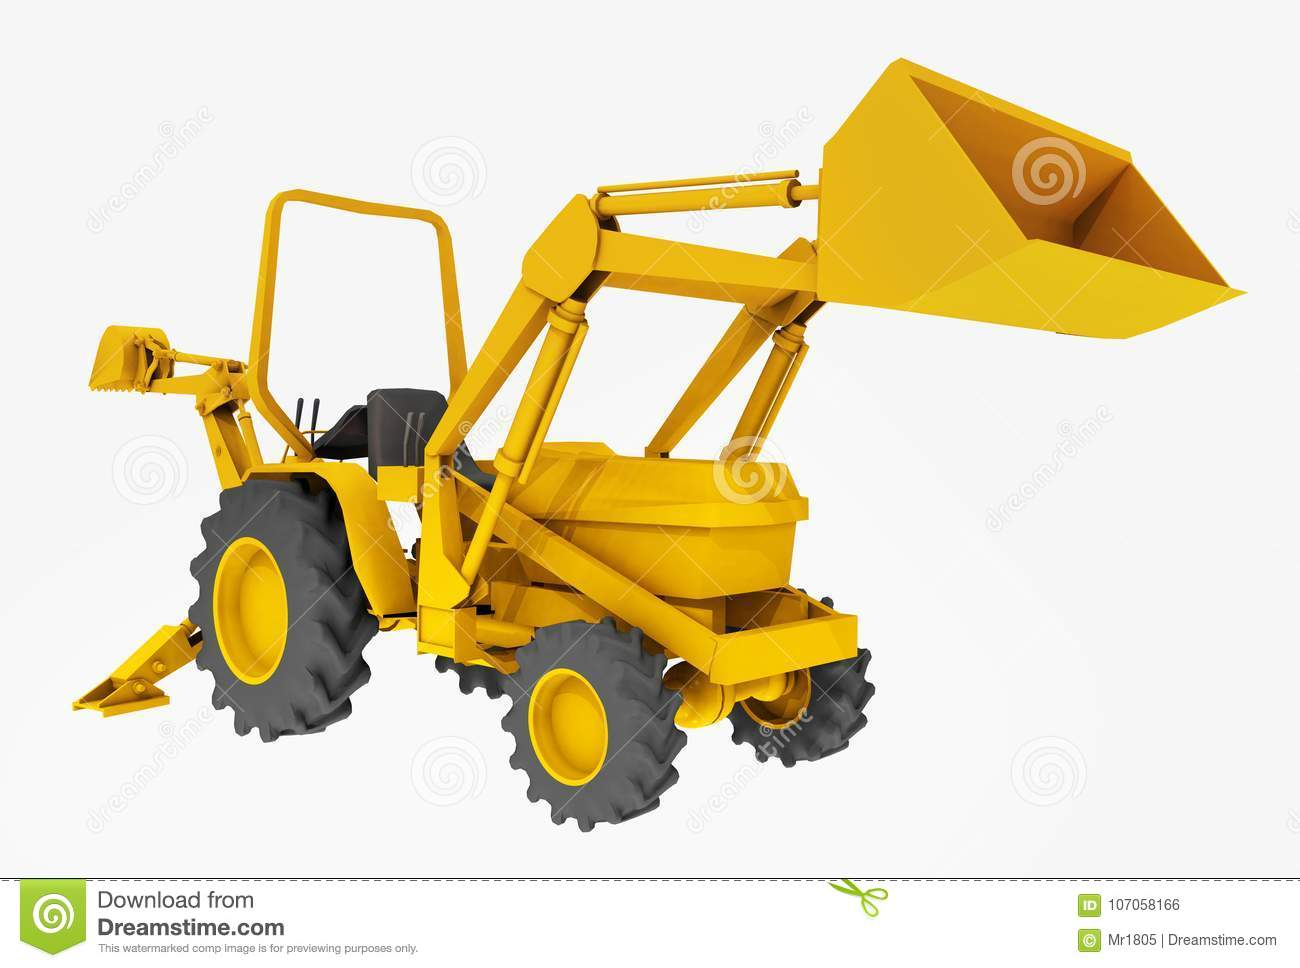 Compact Tractor, Front Loader And Backhoe, Isolated On White